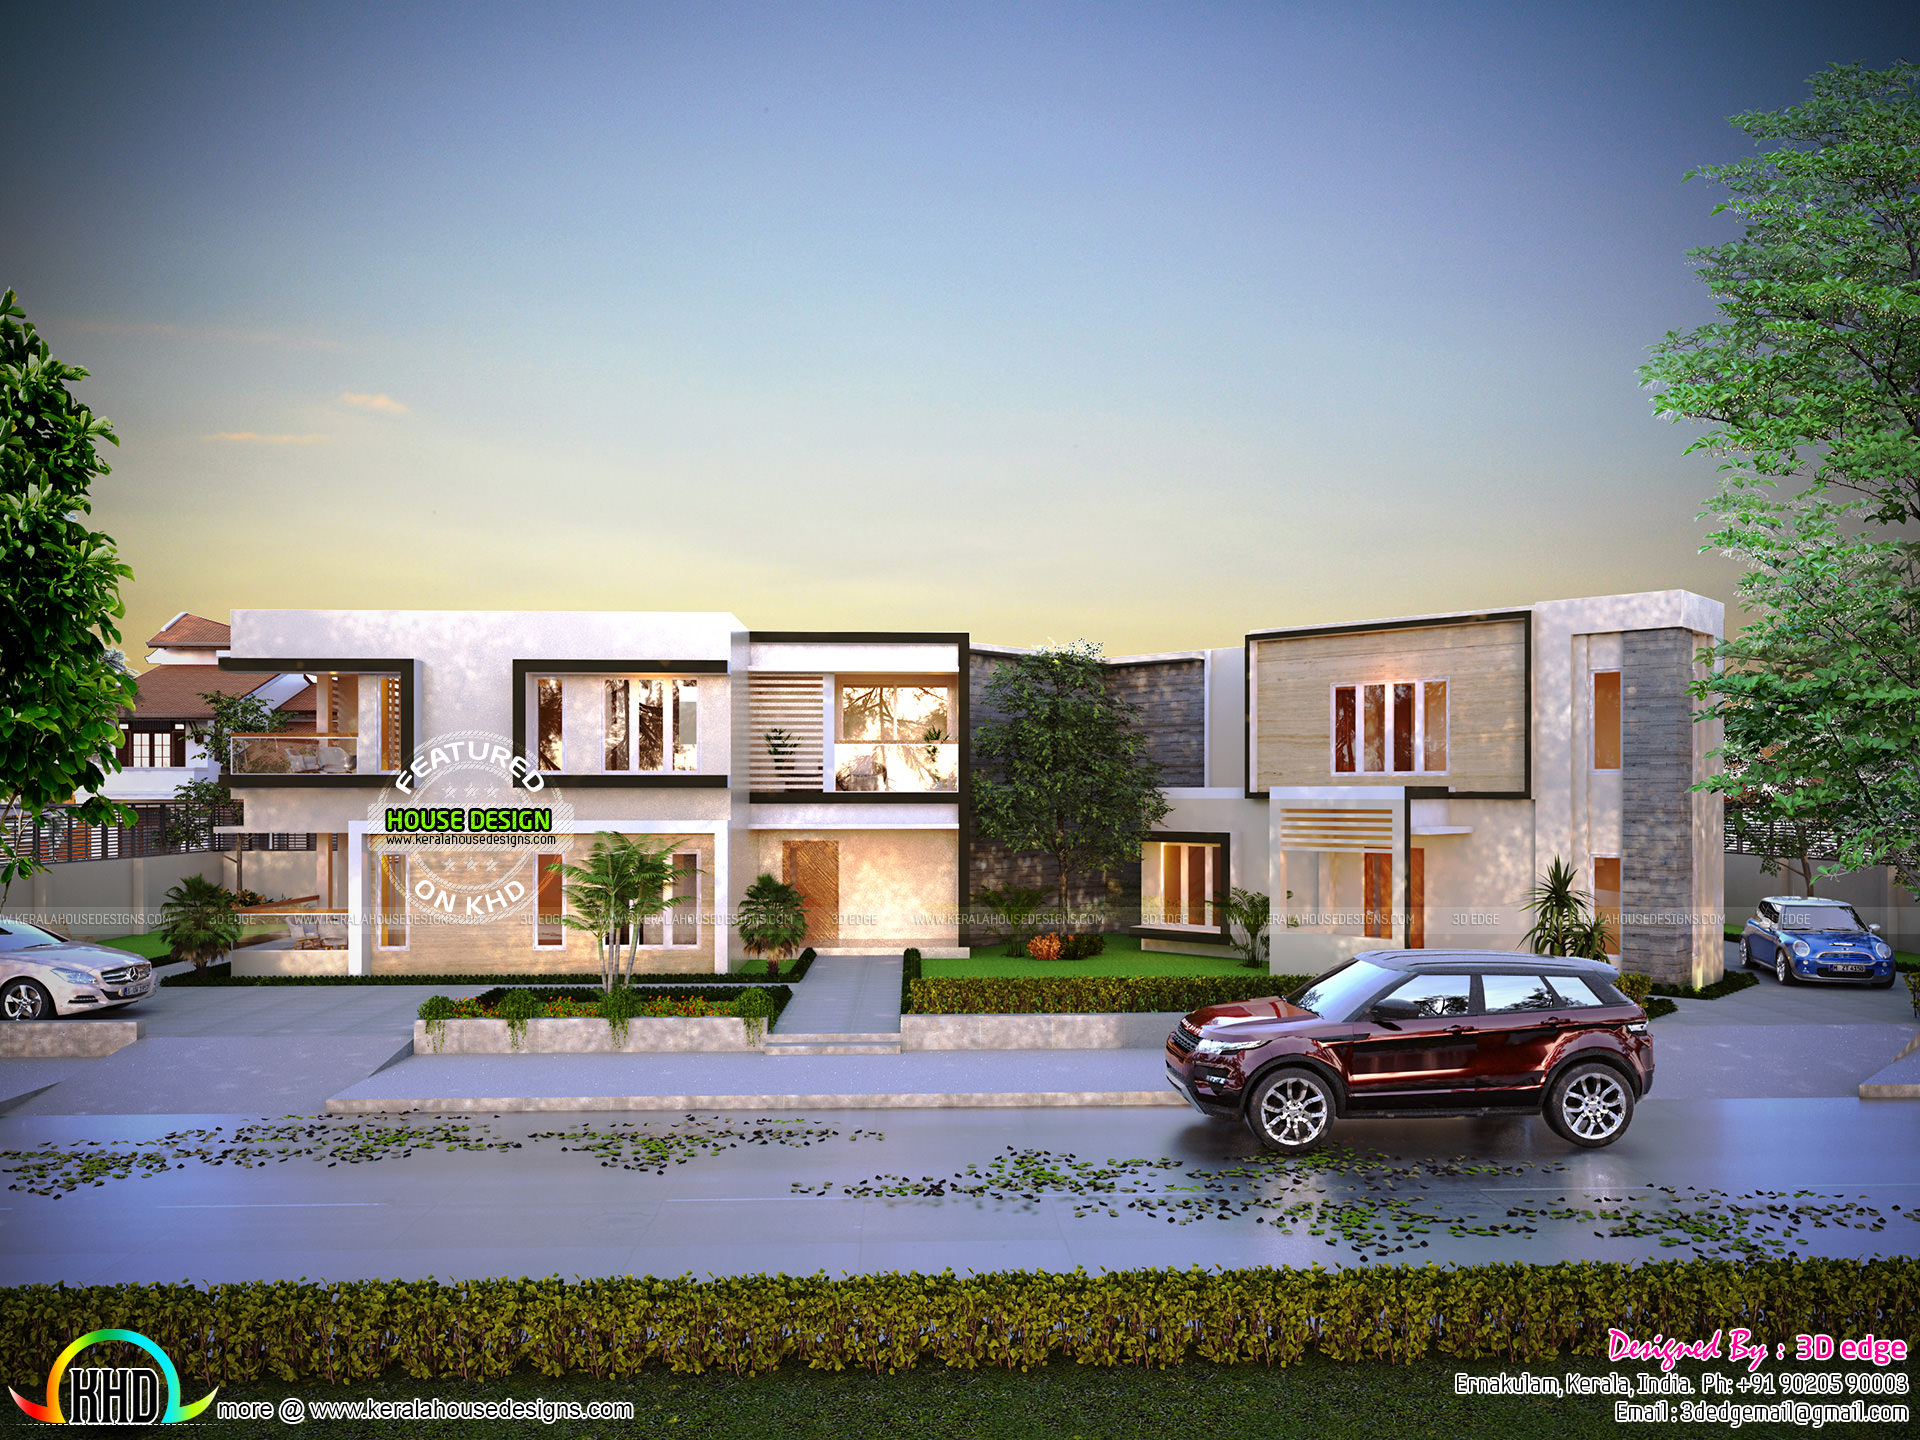 See floor plans read more please follow kerala home design - Design Style Modern Contemporary See Blueprint Floor Plan Facility Details Read More Please Follow Kerala Home Design